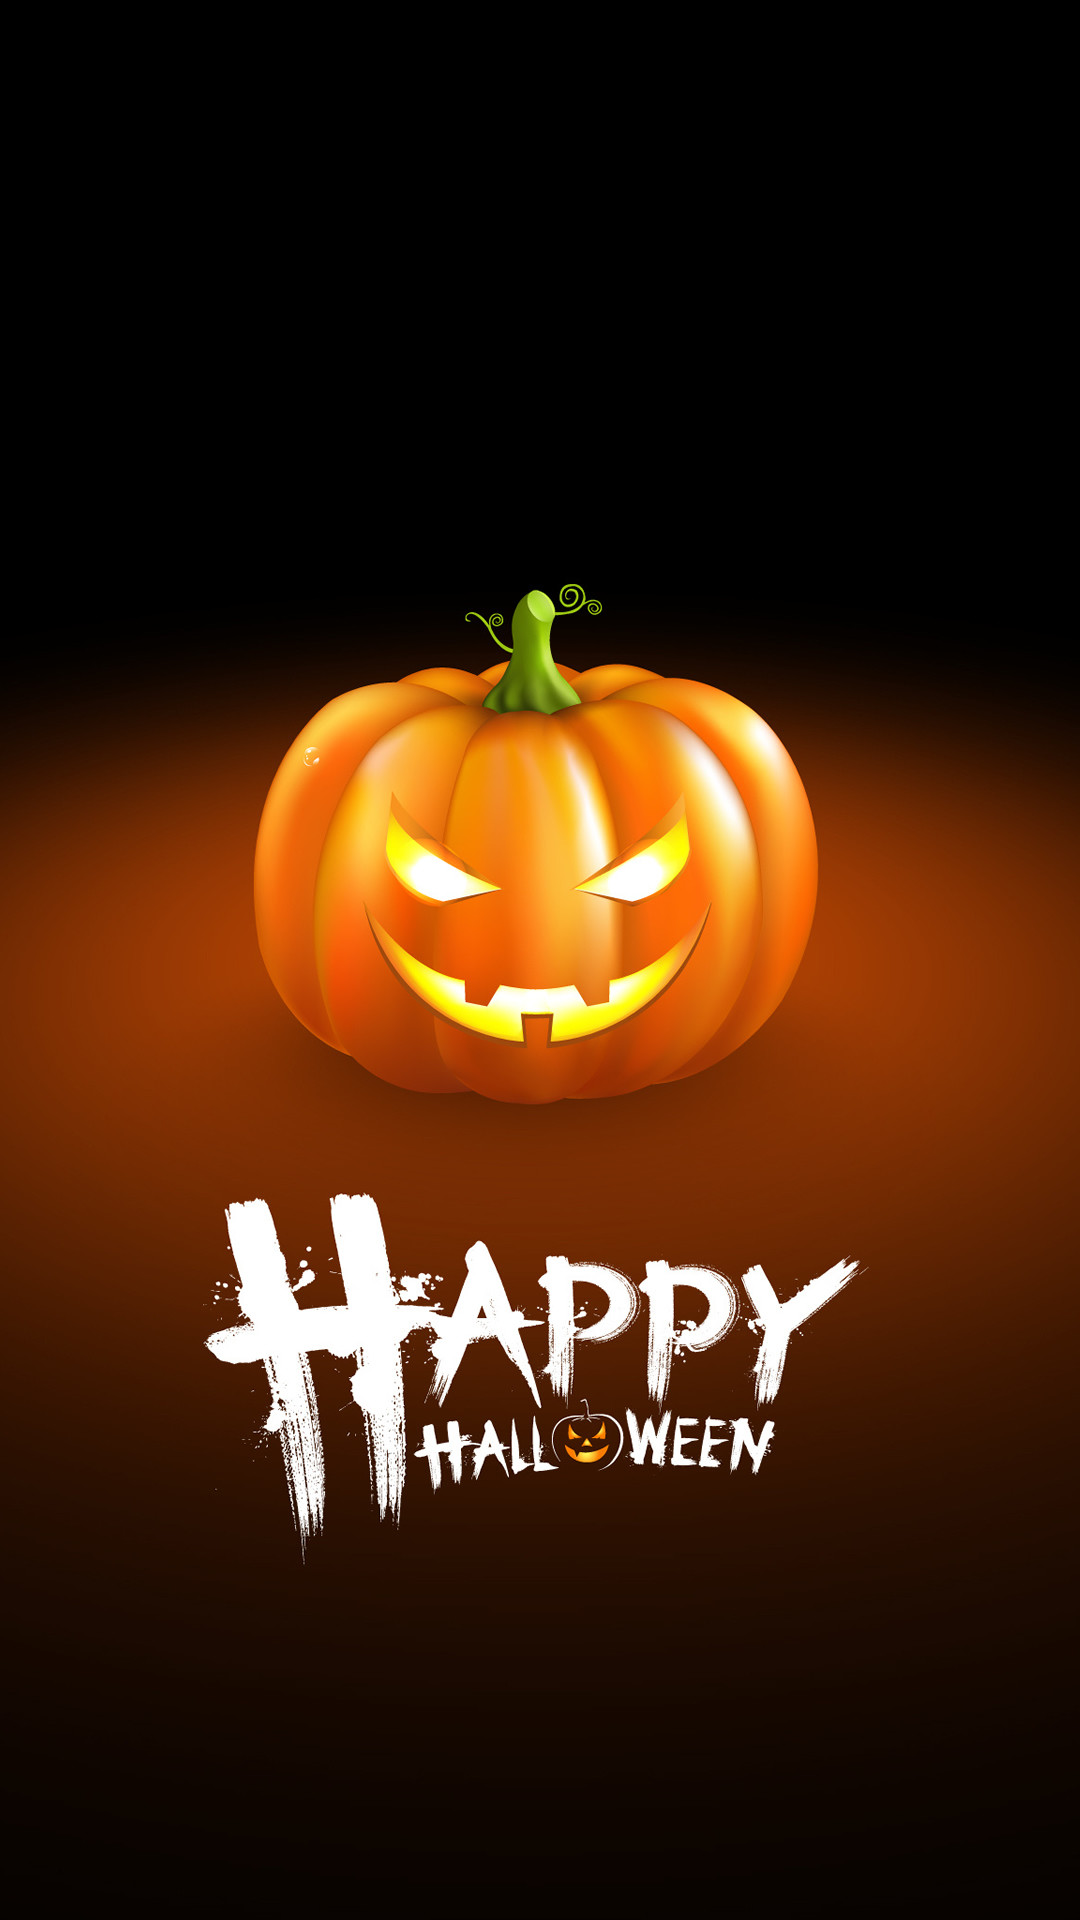 Must see Wallpaper Halloween Iphone 6s Plus - 304799  HD_813319.jpg